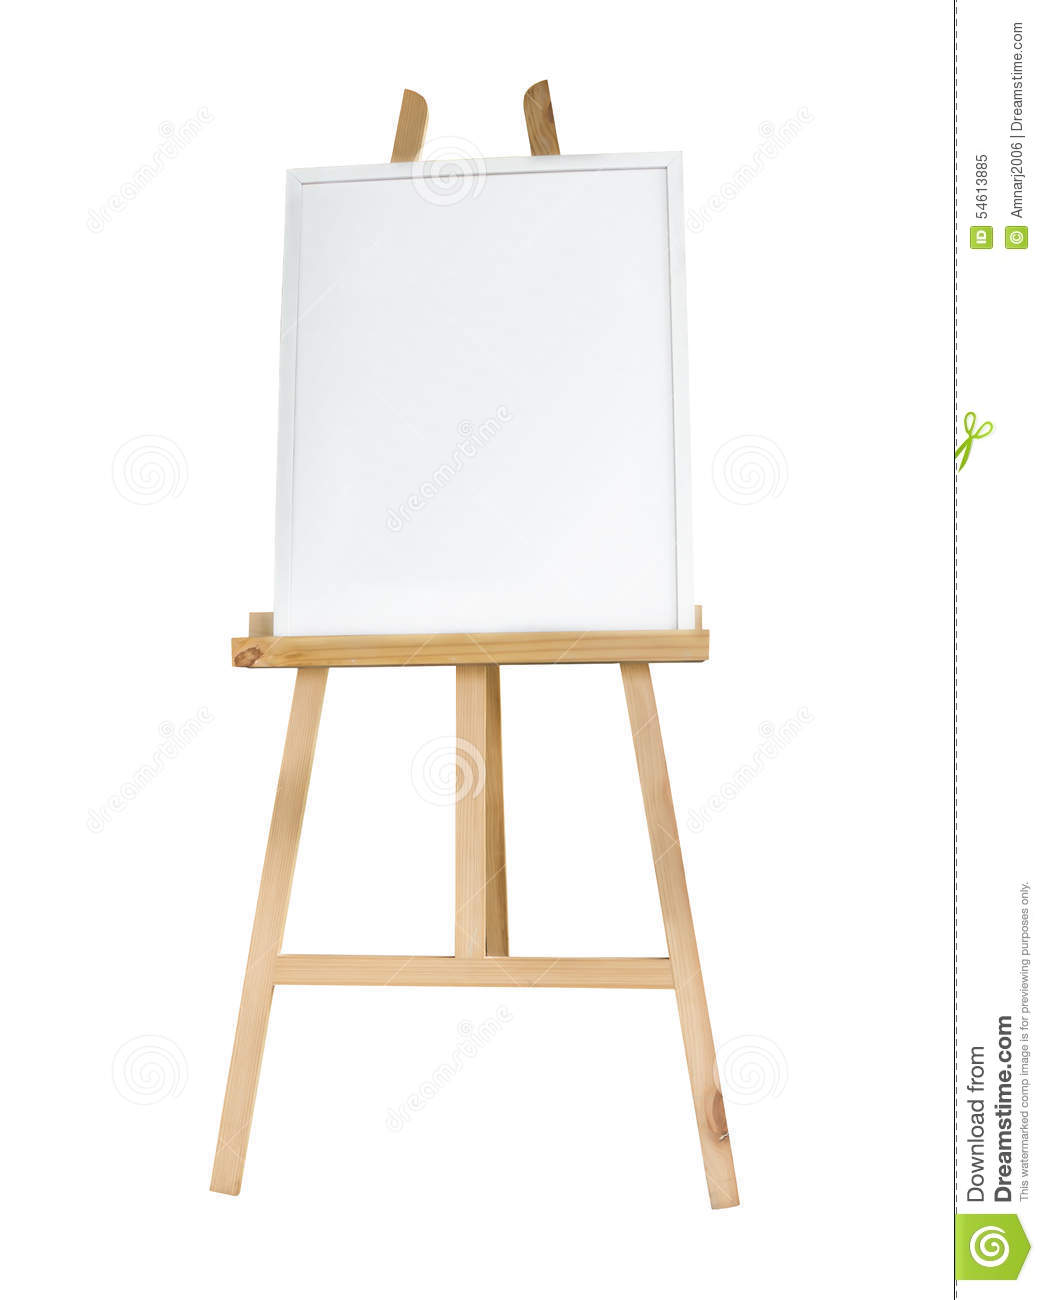 Clean canvas or board on a easel stock image image of for What is canvas board